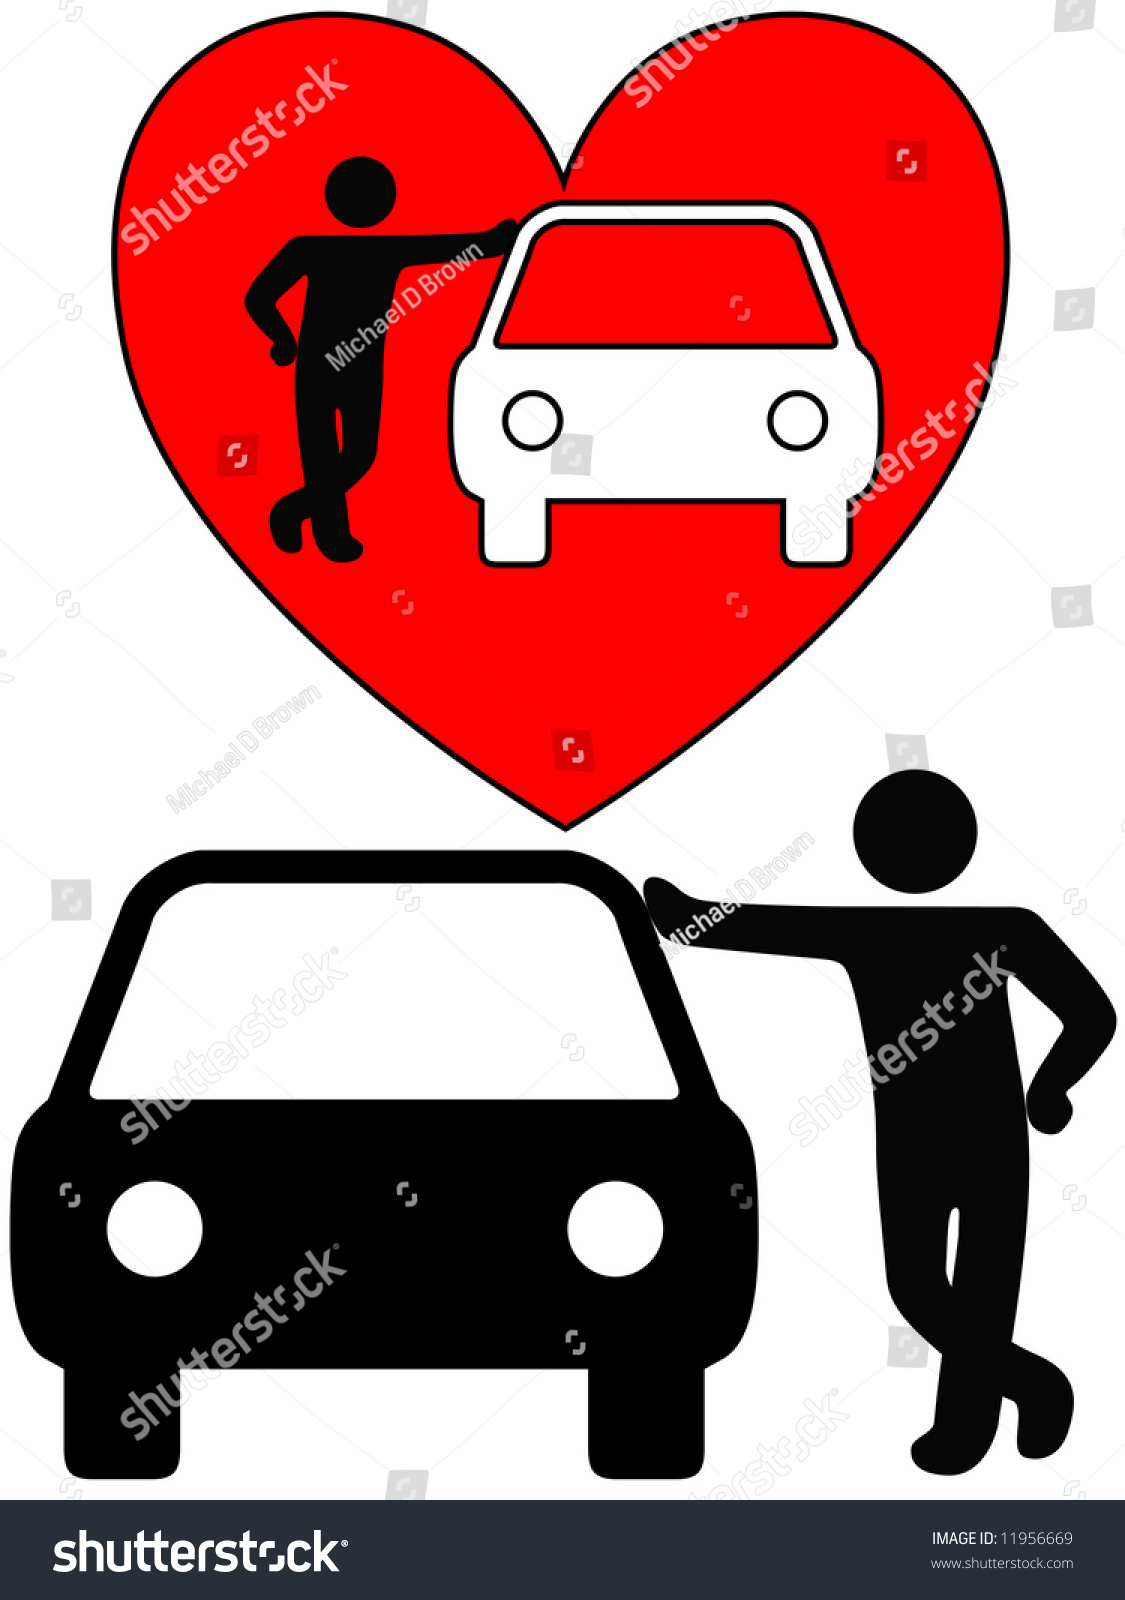 Love car symbol person loving car stock vector 11956669 shutterstock love the car a symbol person as a loving car owner leans on a car biocorpaavc Choice Image